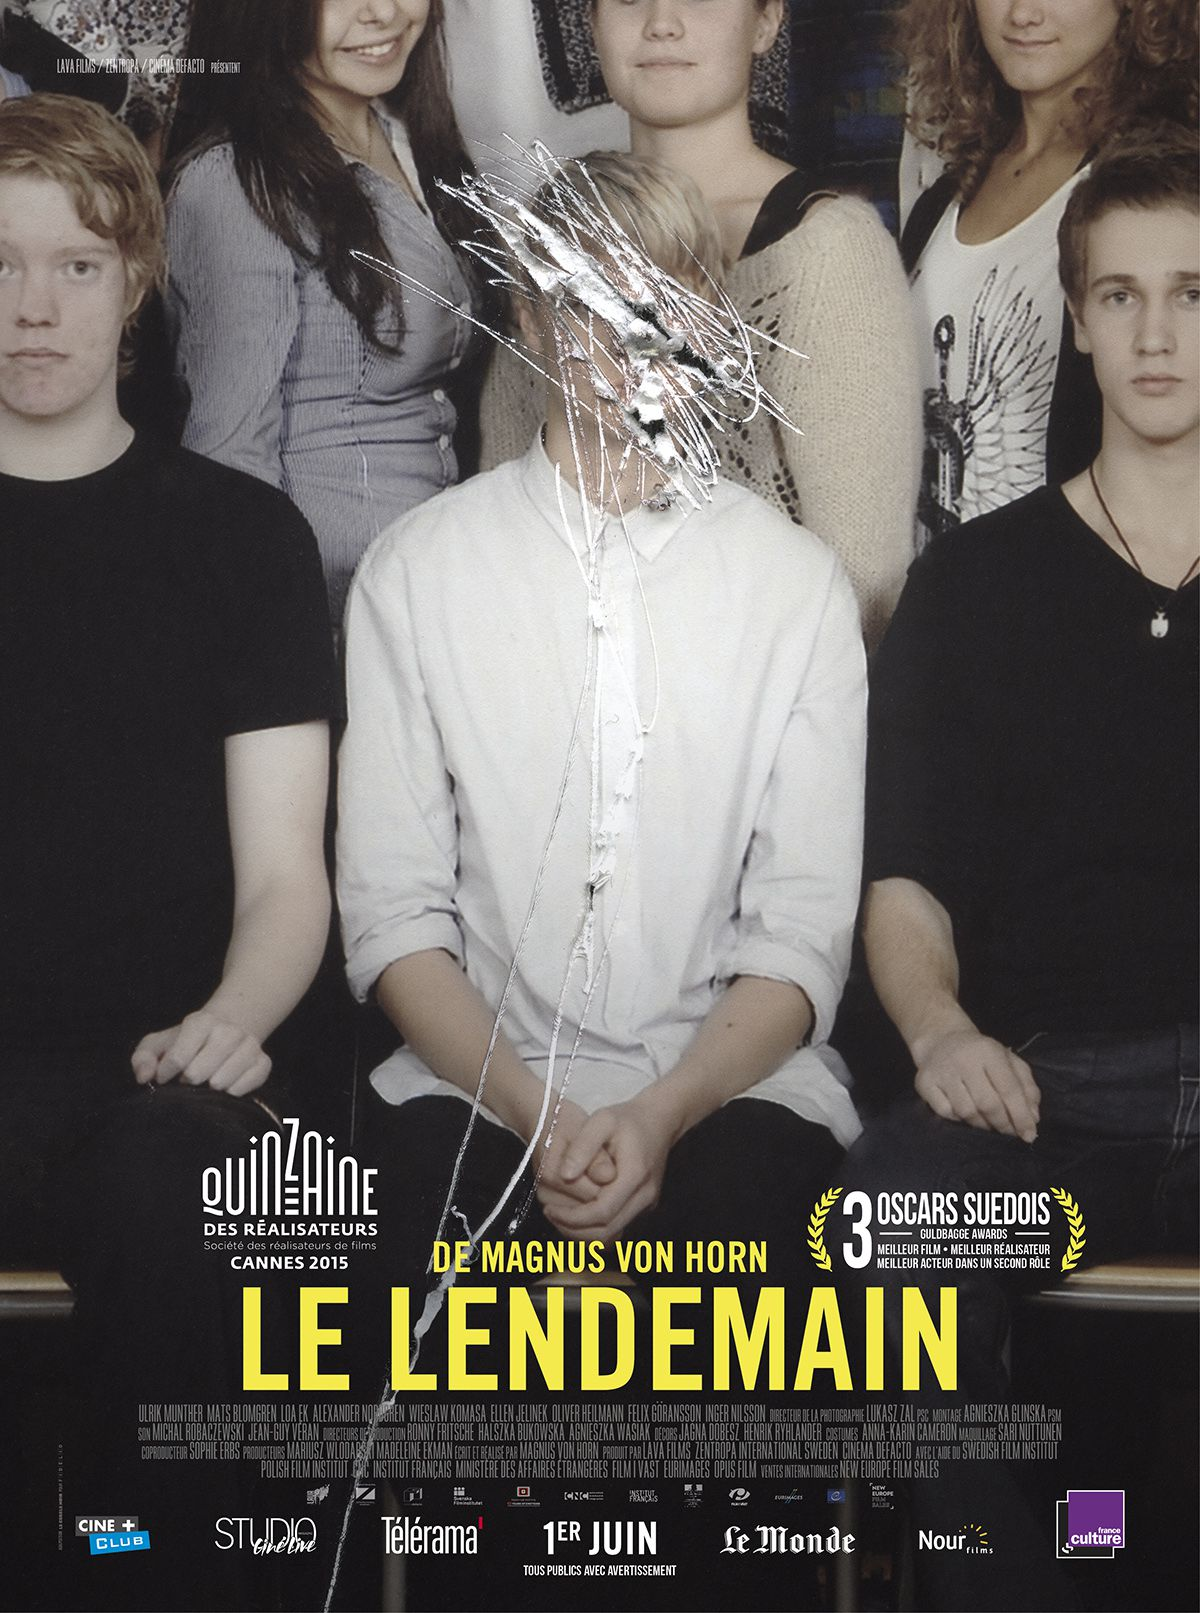 Le Lendemain - Film (2015) streaming VF gratuit complet